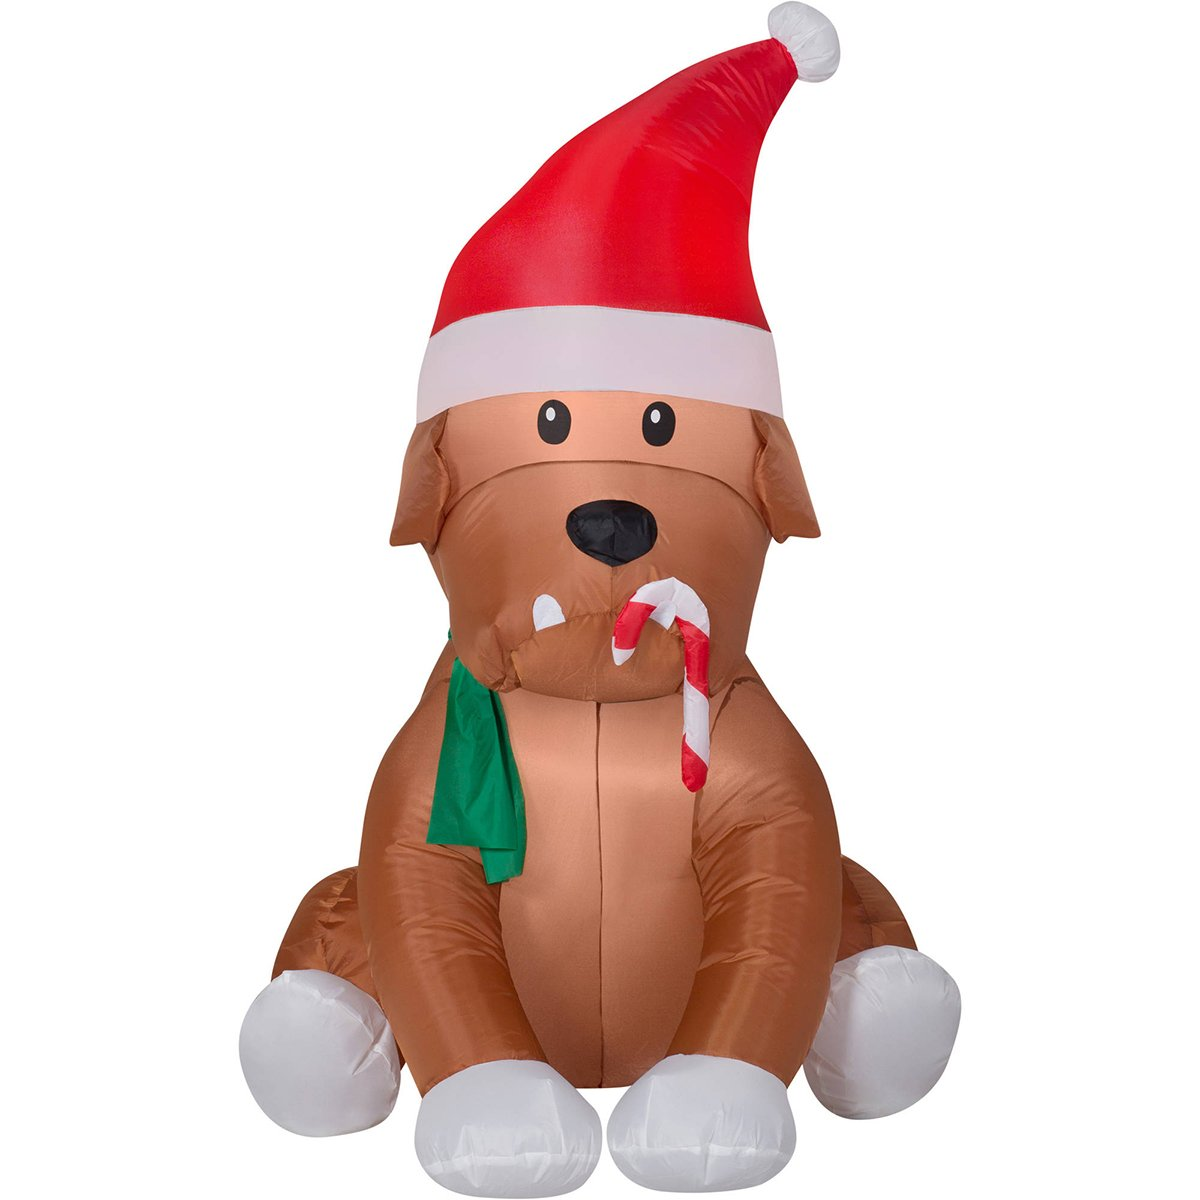 English Bulldog Inflateable Holiday Air Blown Outdoor Christmas Decor (I-11)